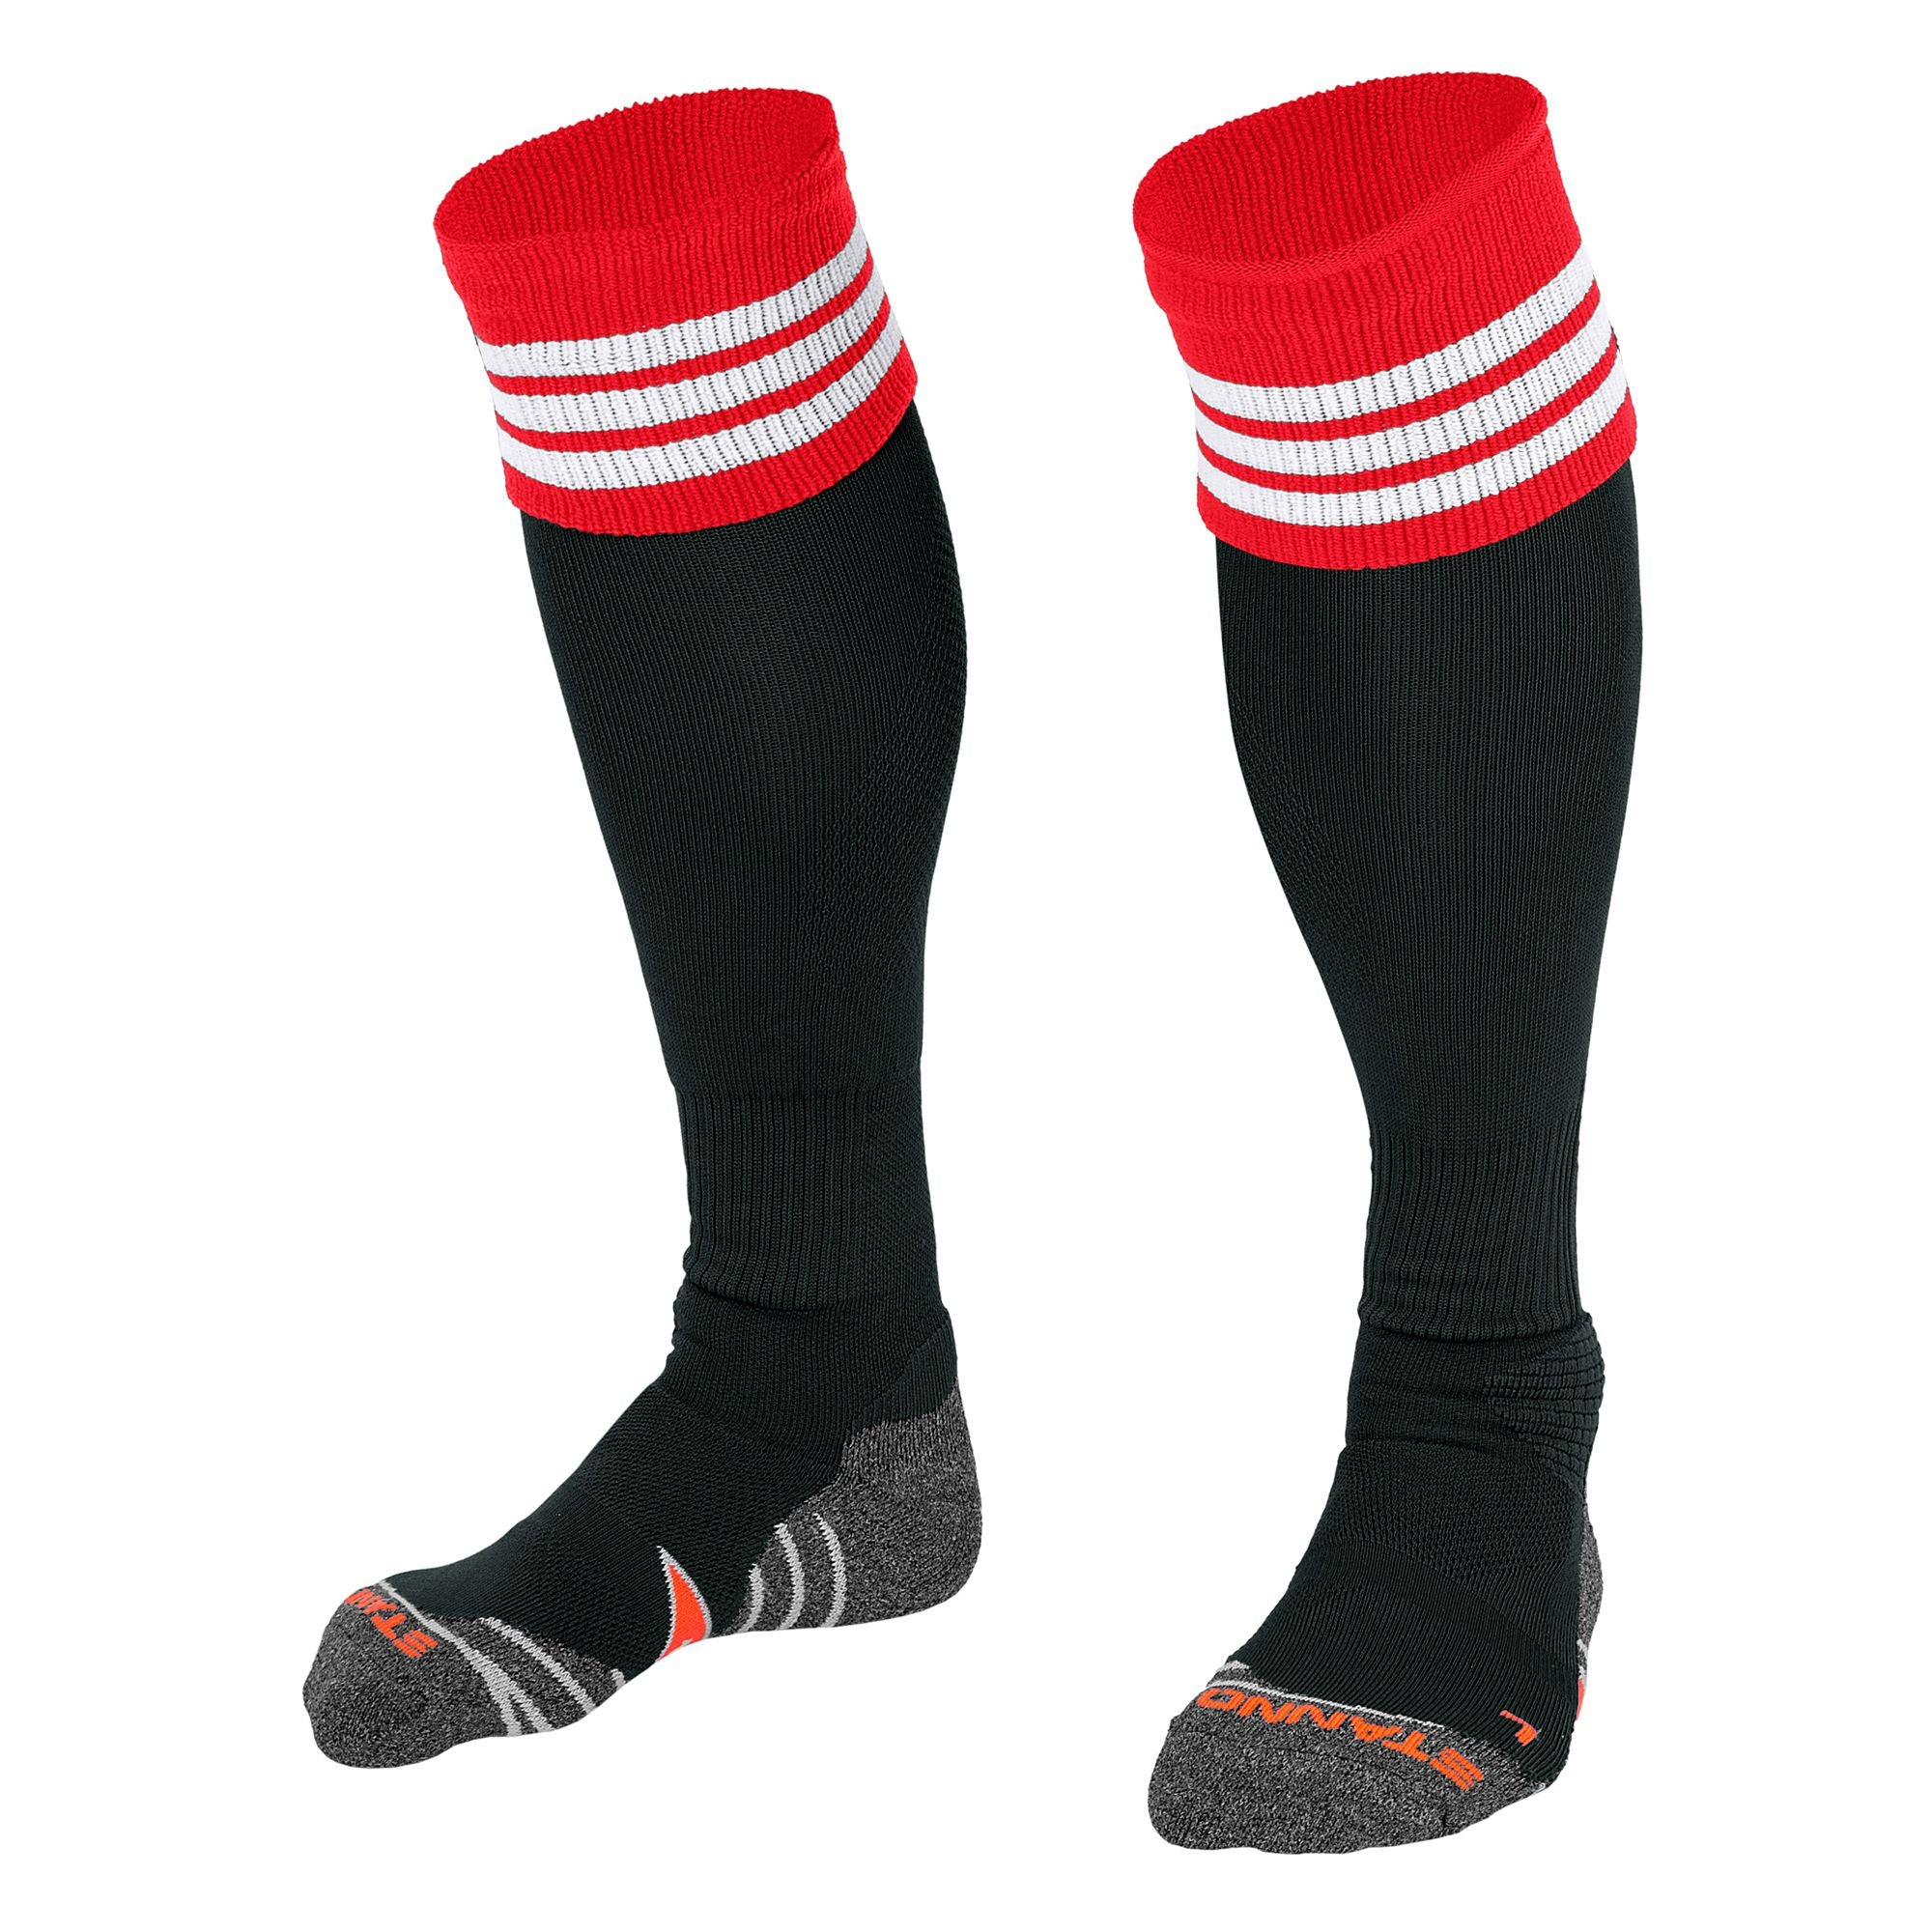 Stanno Ring Sock - Black/Red/white